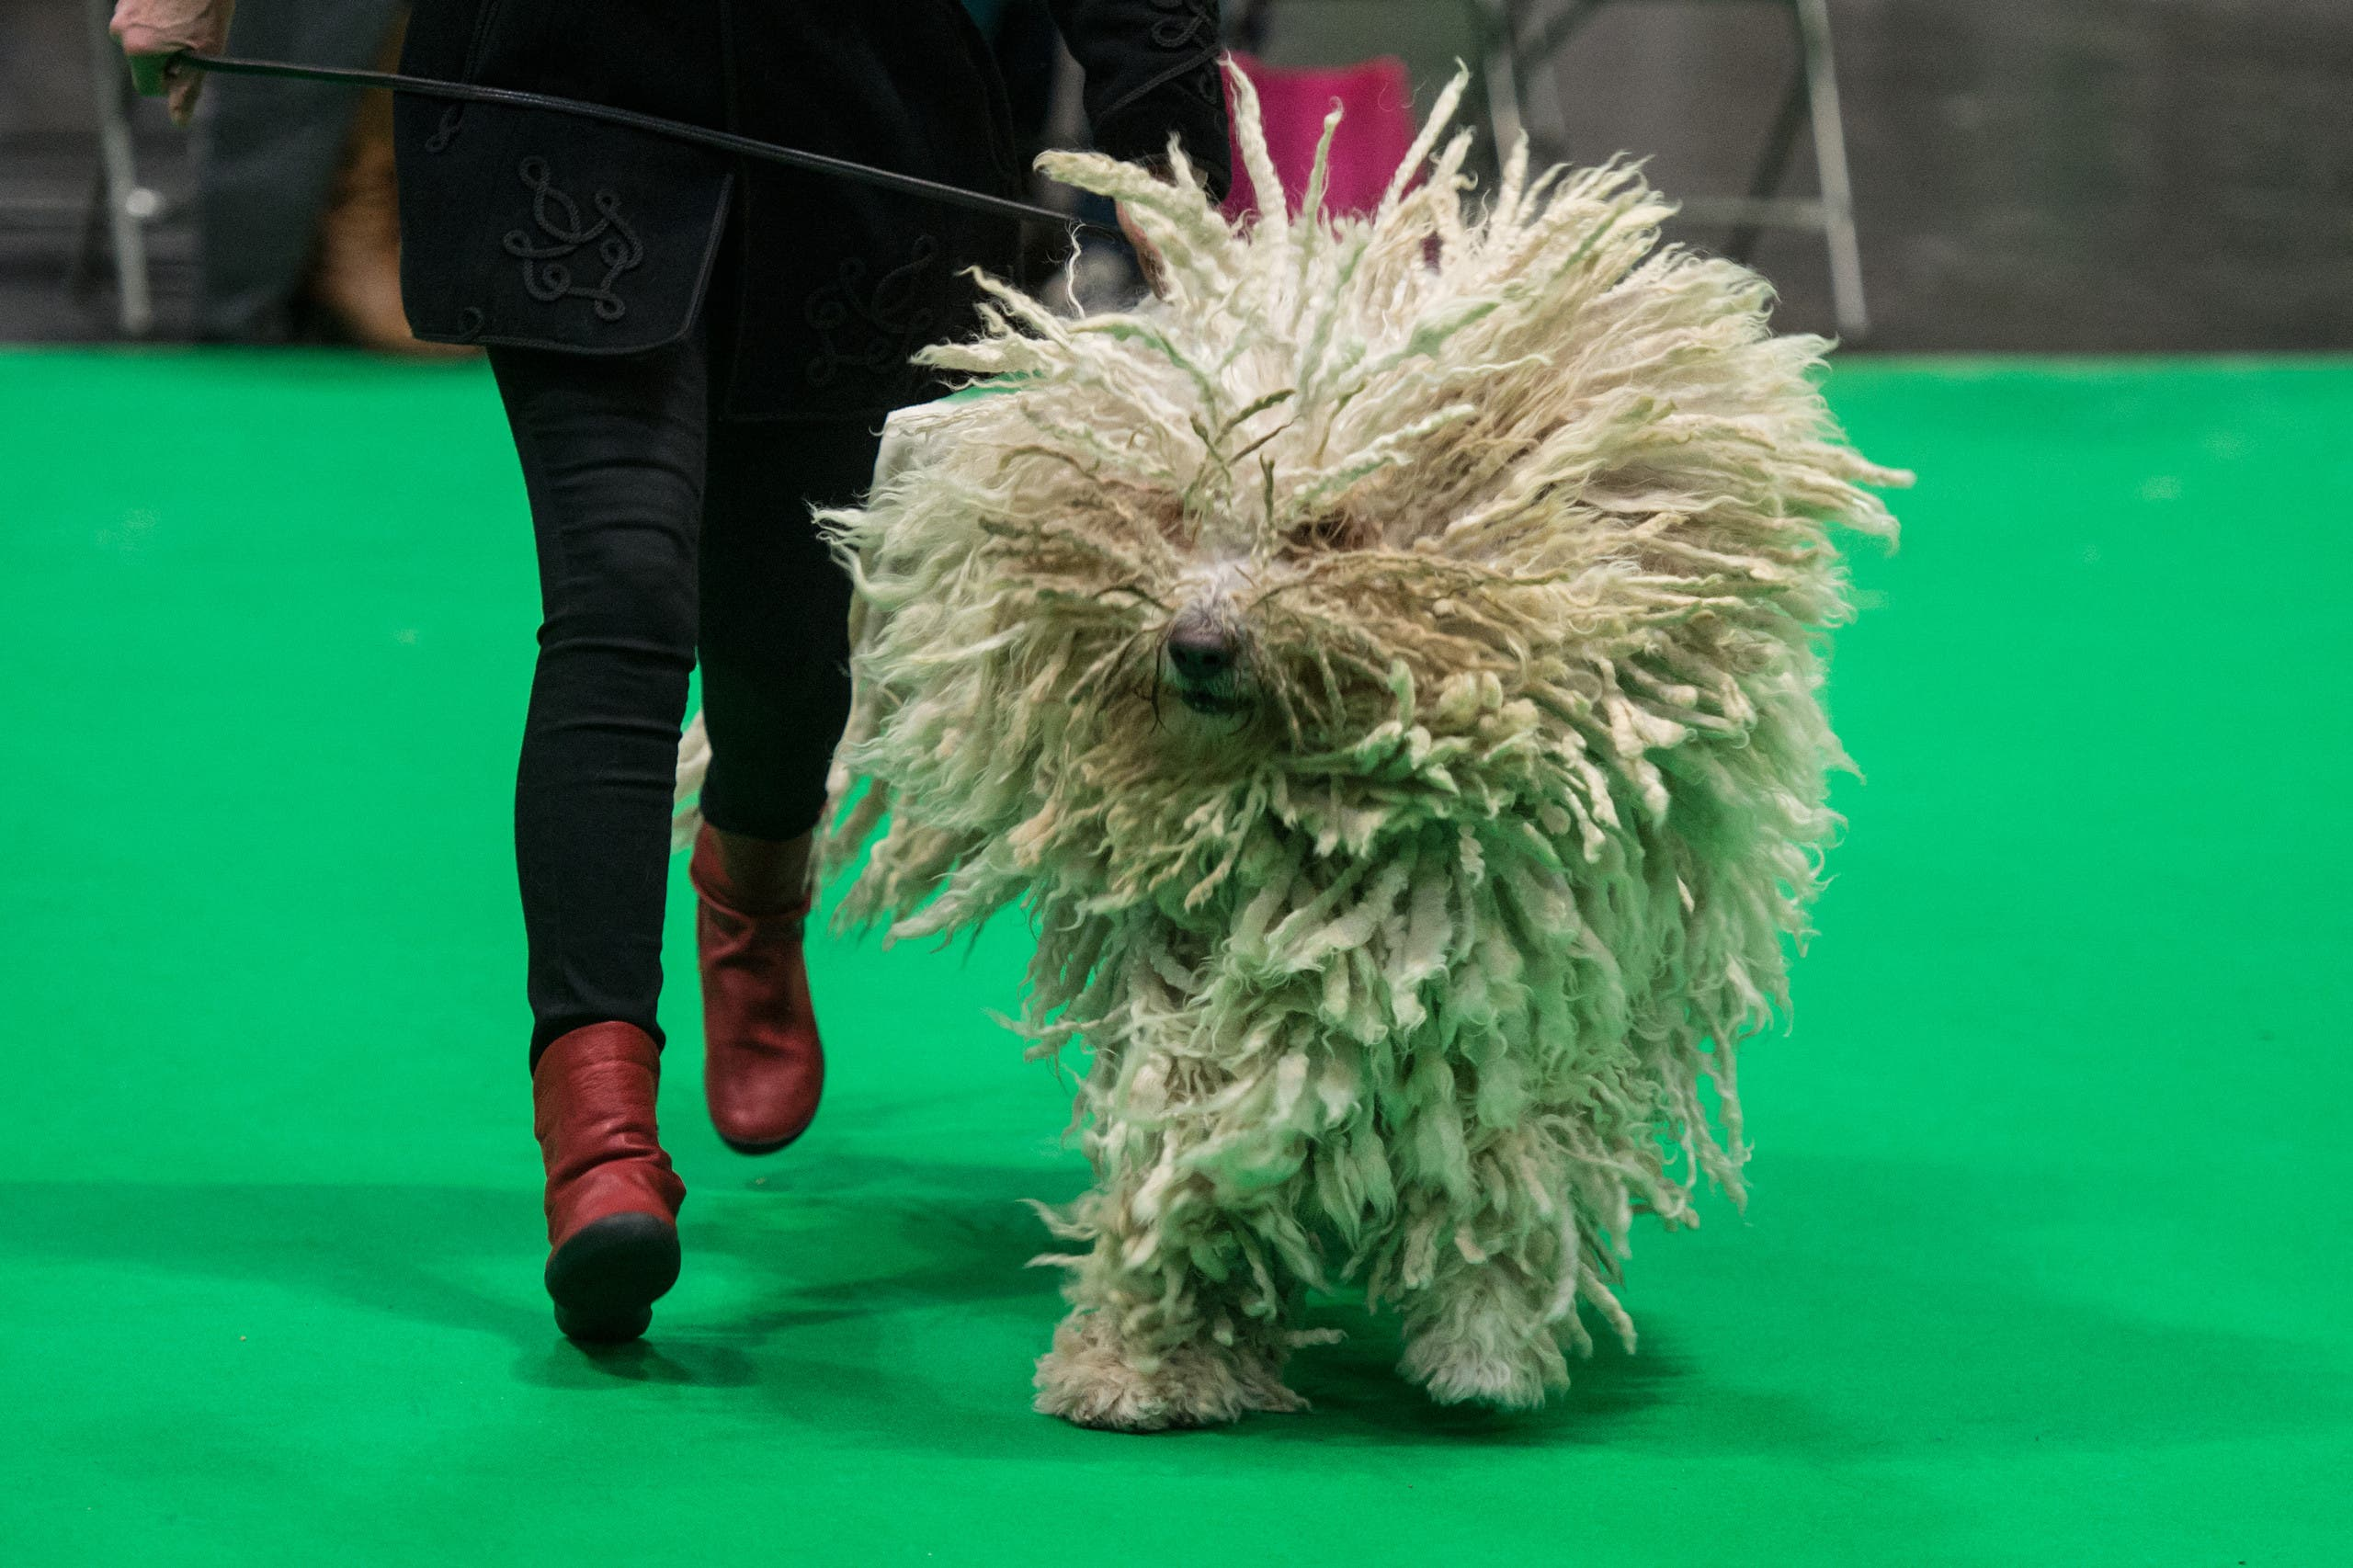 A woman runs with her Komondor dog as its judged in a show ring on the second day of the Crufts dog show at the National Exhibition Centre in Birmingham, central England, on March 8, 2019. (File photo: AFP)